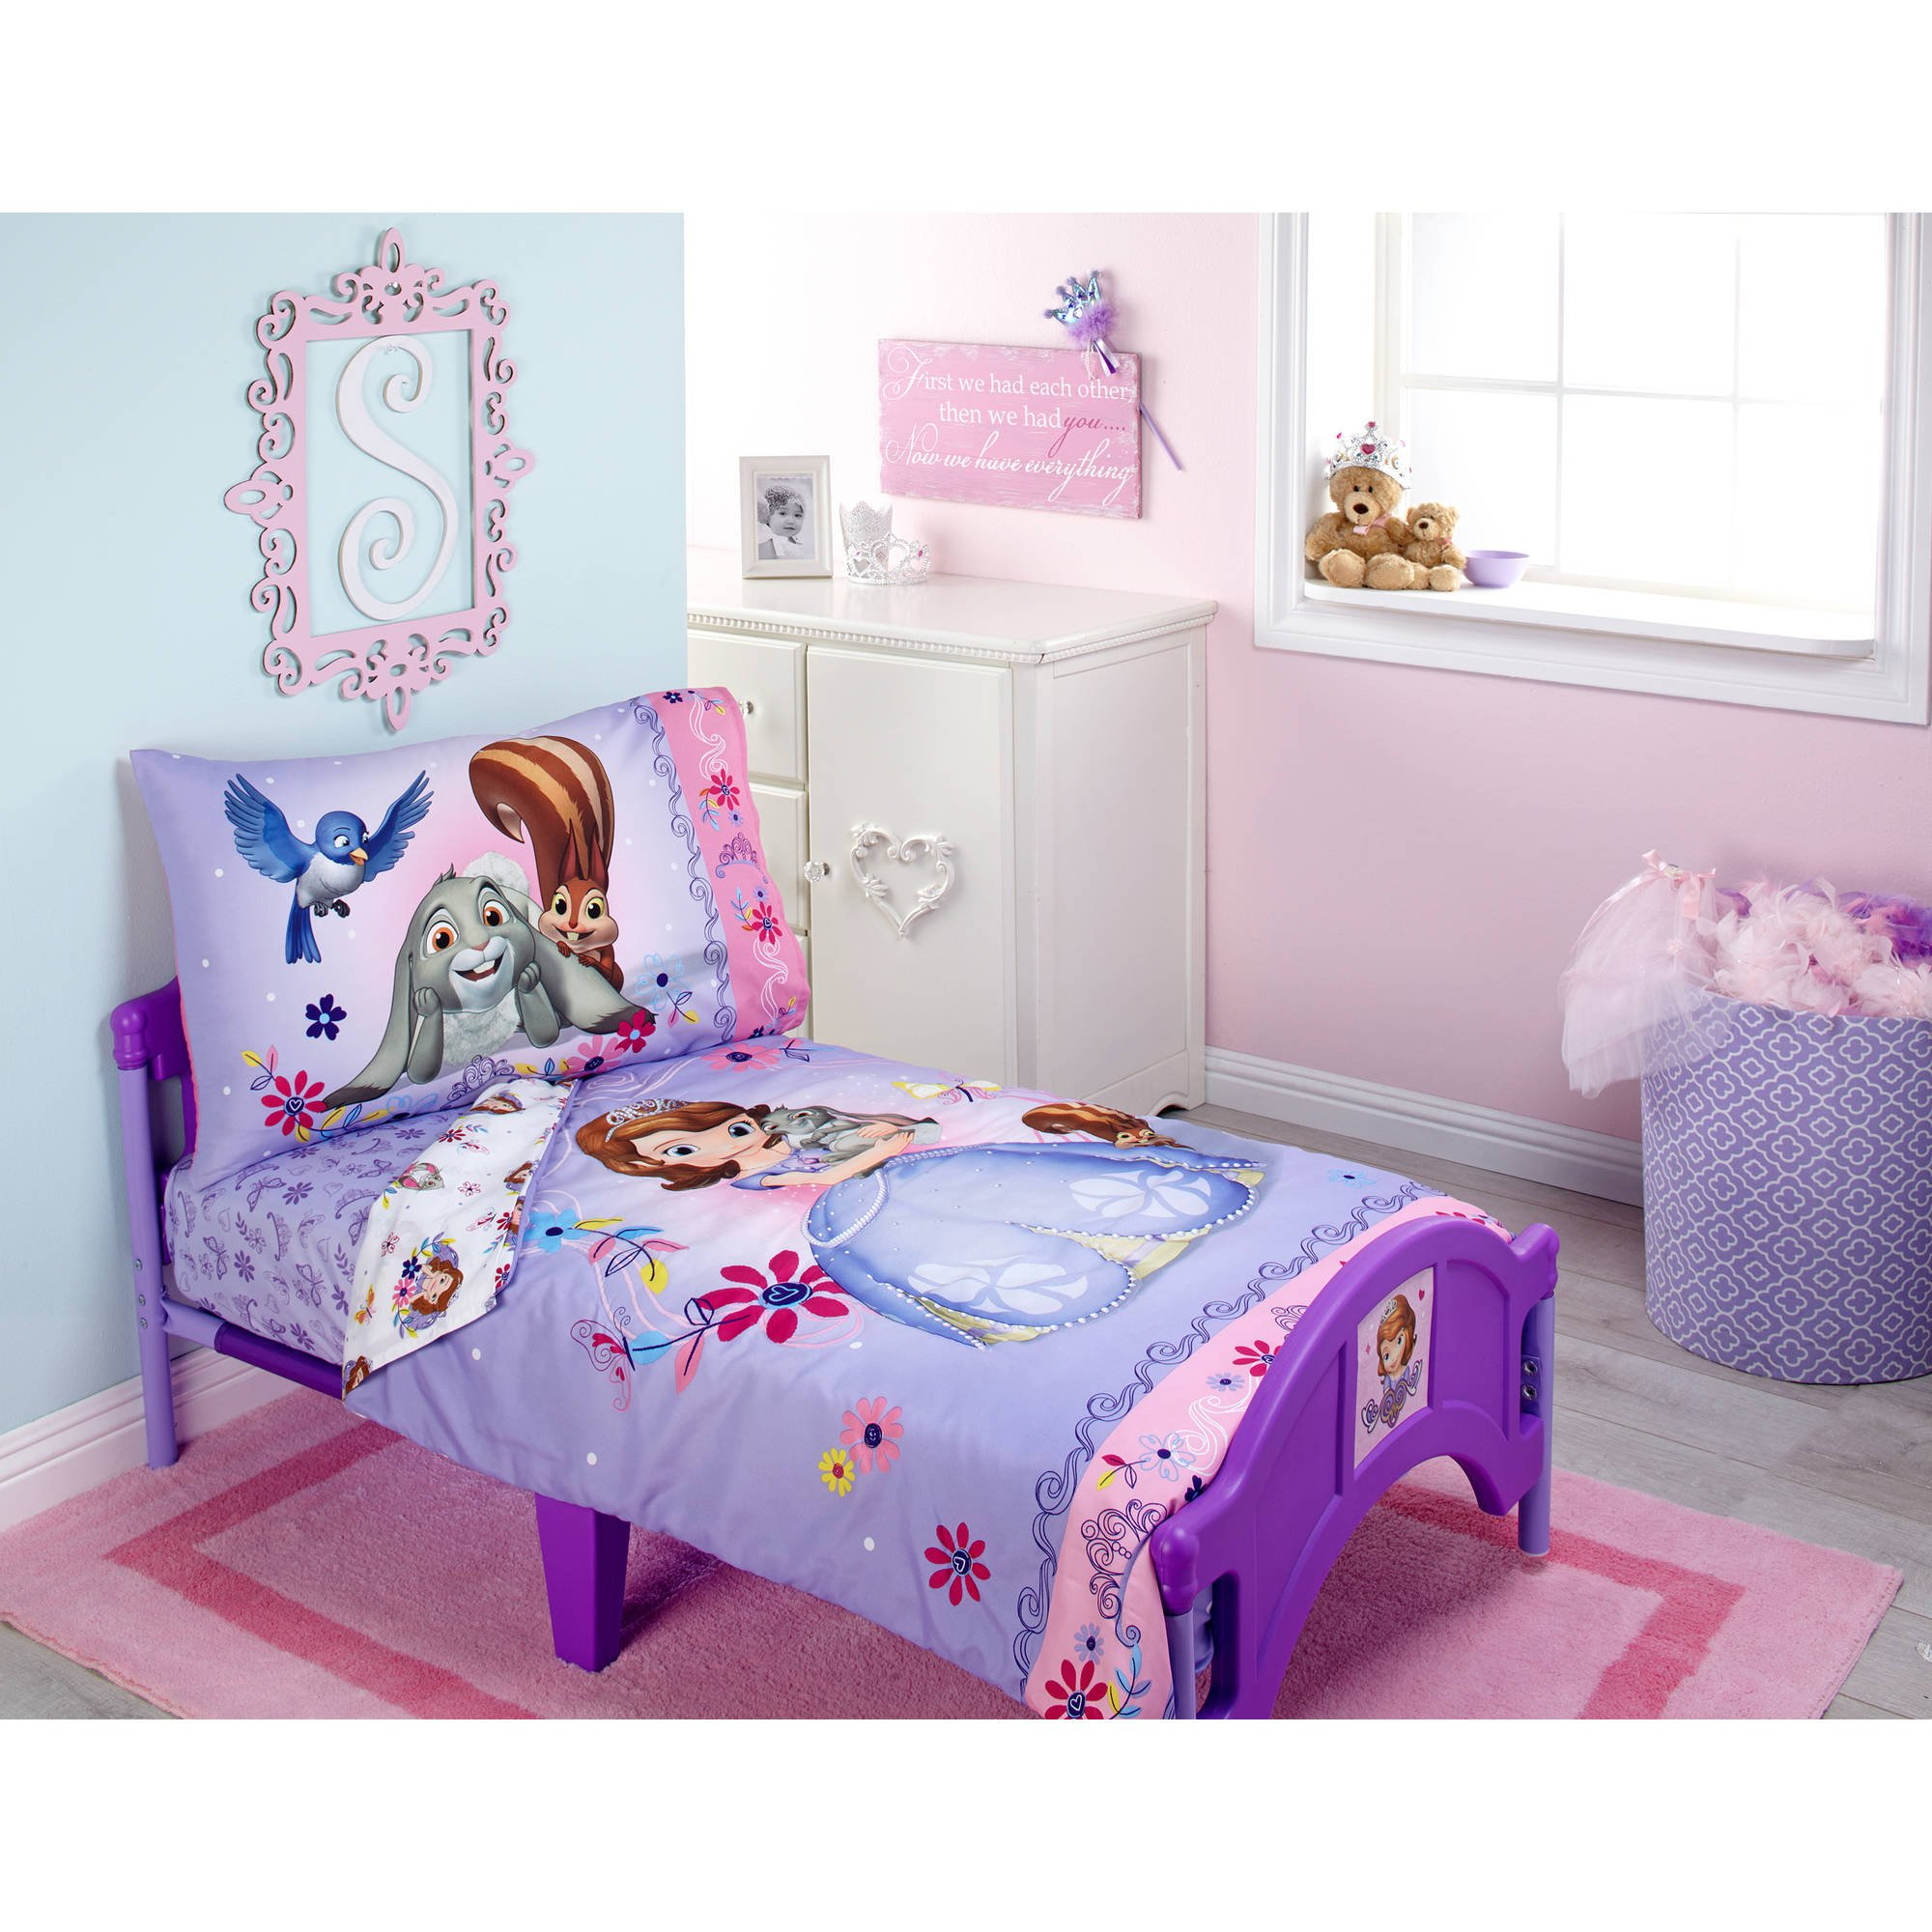 Sofia Friends Are Magic 4 Piece Toddler Bedding Set